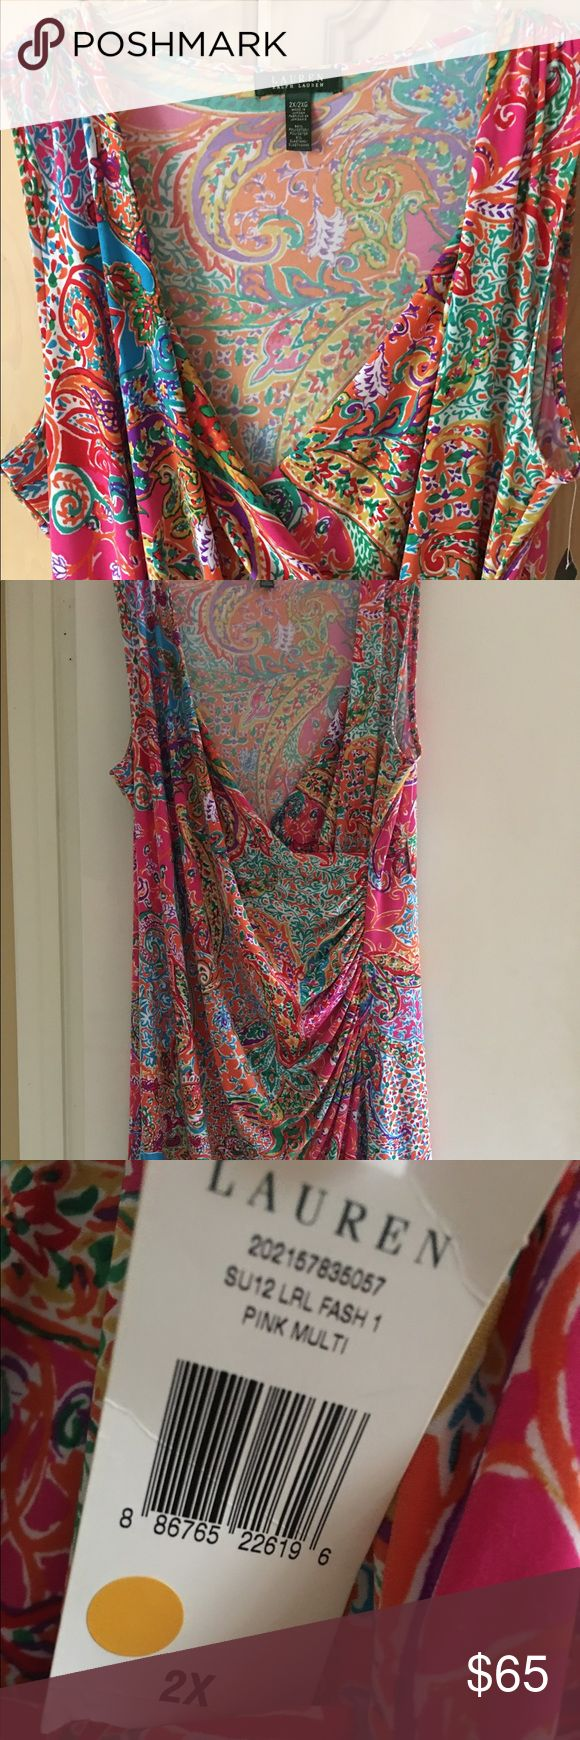 🌴NWT RALPH LAUREN tropical colors paisley dress Bright and vibrant tropical color RALPH LAUREN dress.  Very flattering and gathered at the hip and waist and cross cross neckline.  Can be dressed up with a nice pair of high heeled sandals or a pair of pumps.  Never worn still has tag.  Length is just below the knees. Ralph Lauren Dresses Midi